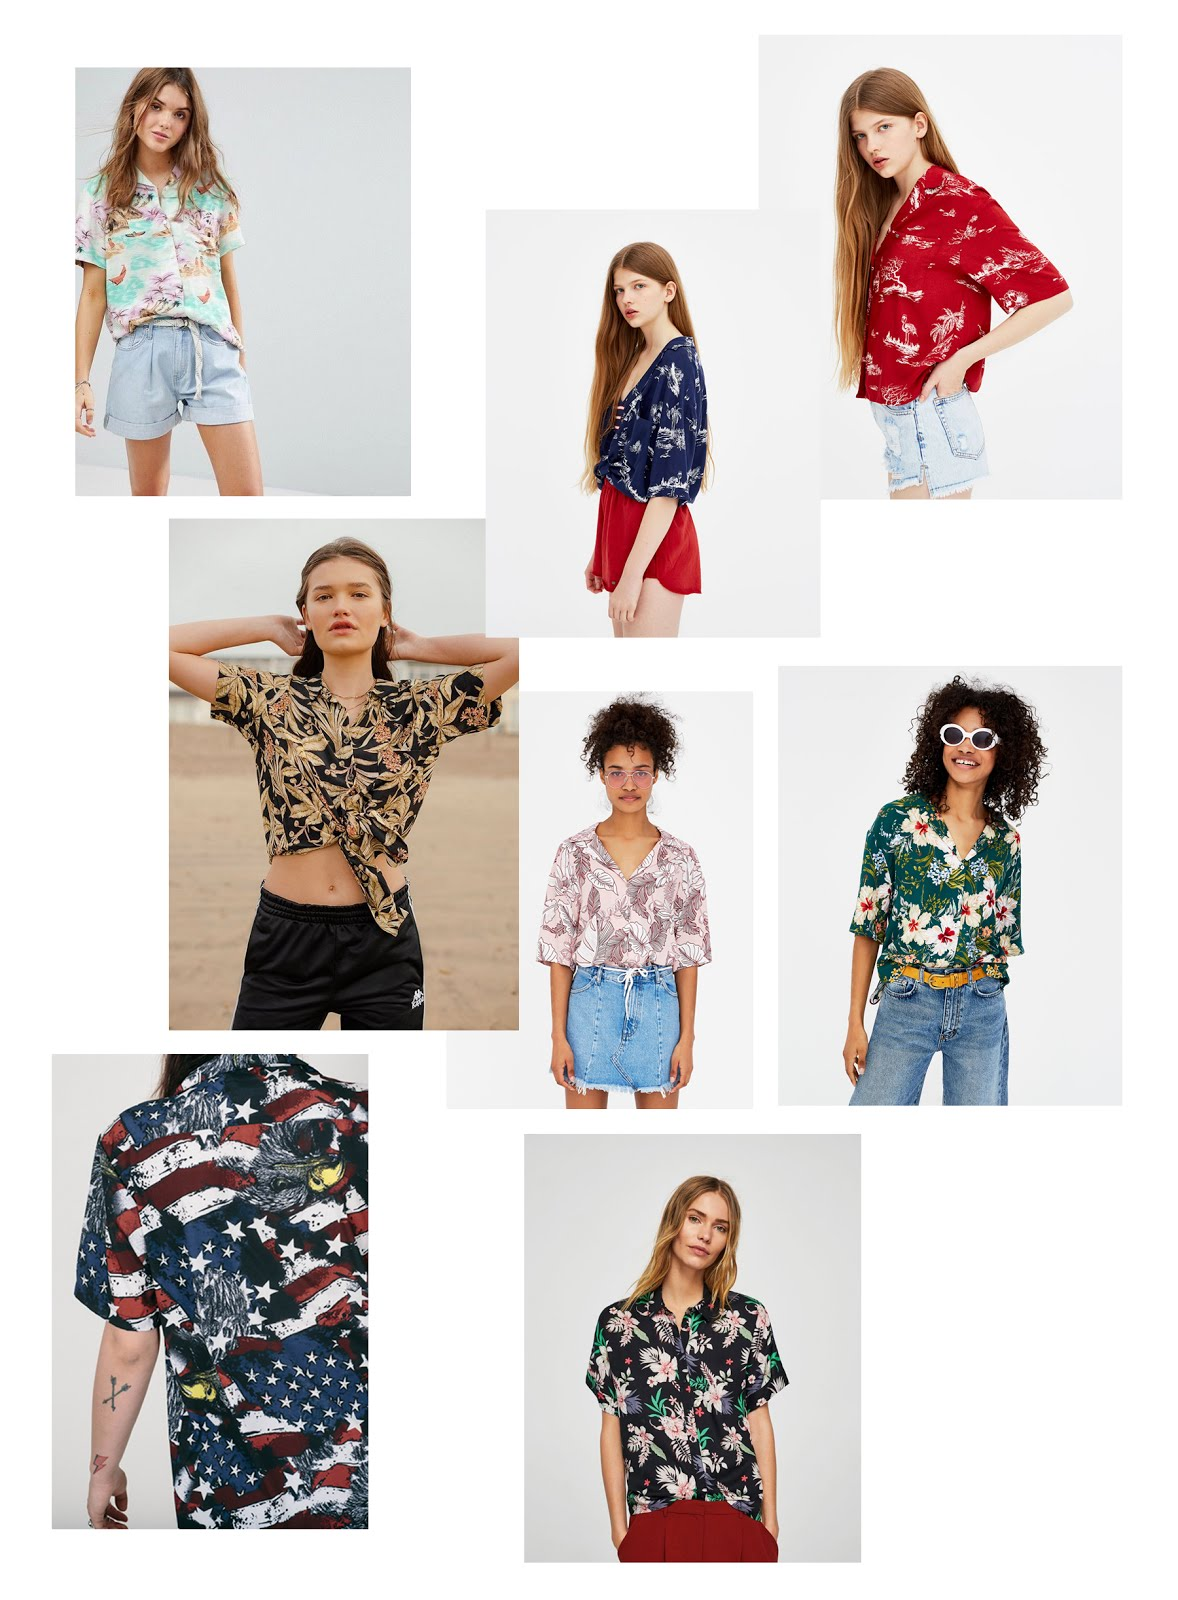 Hawaiian shirt, tropical, aloha, short sleeve, flowers, trend 2018, top 10, SS18, levi's, pull & bear, asos, mango